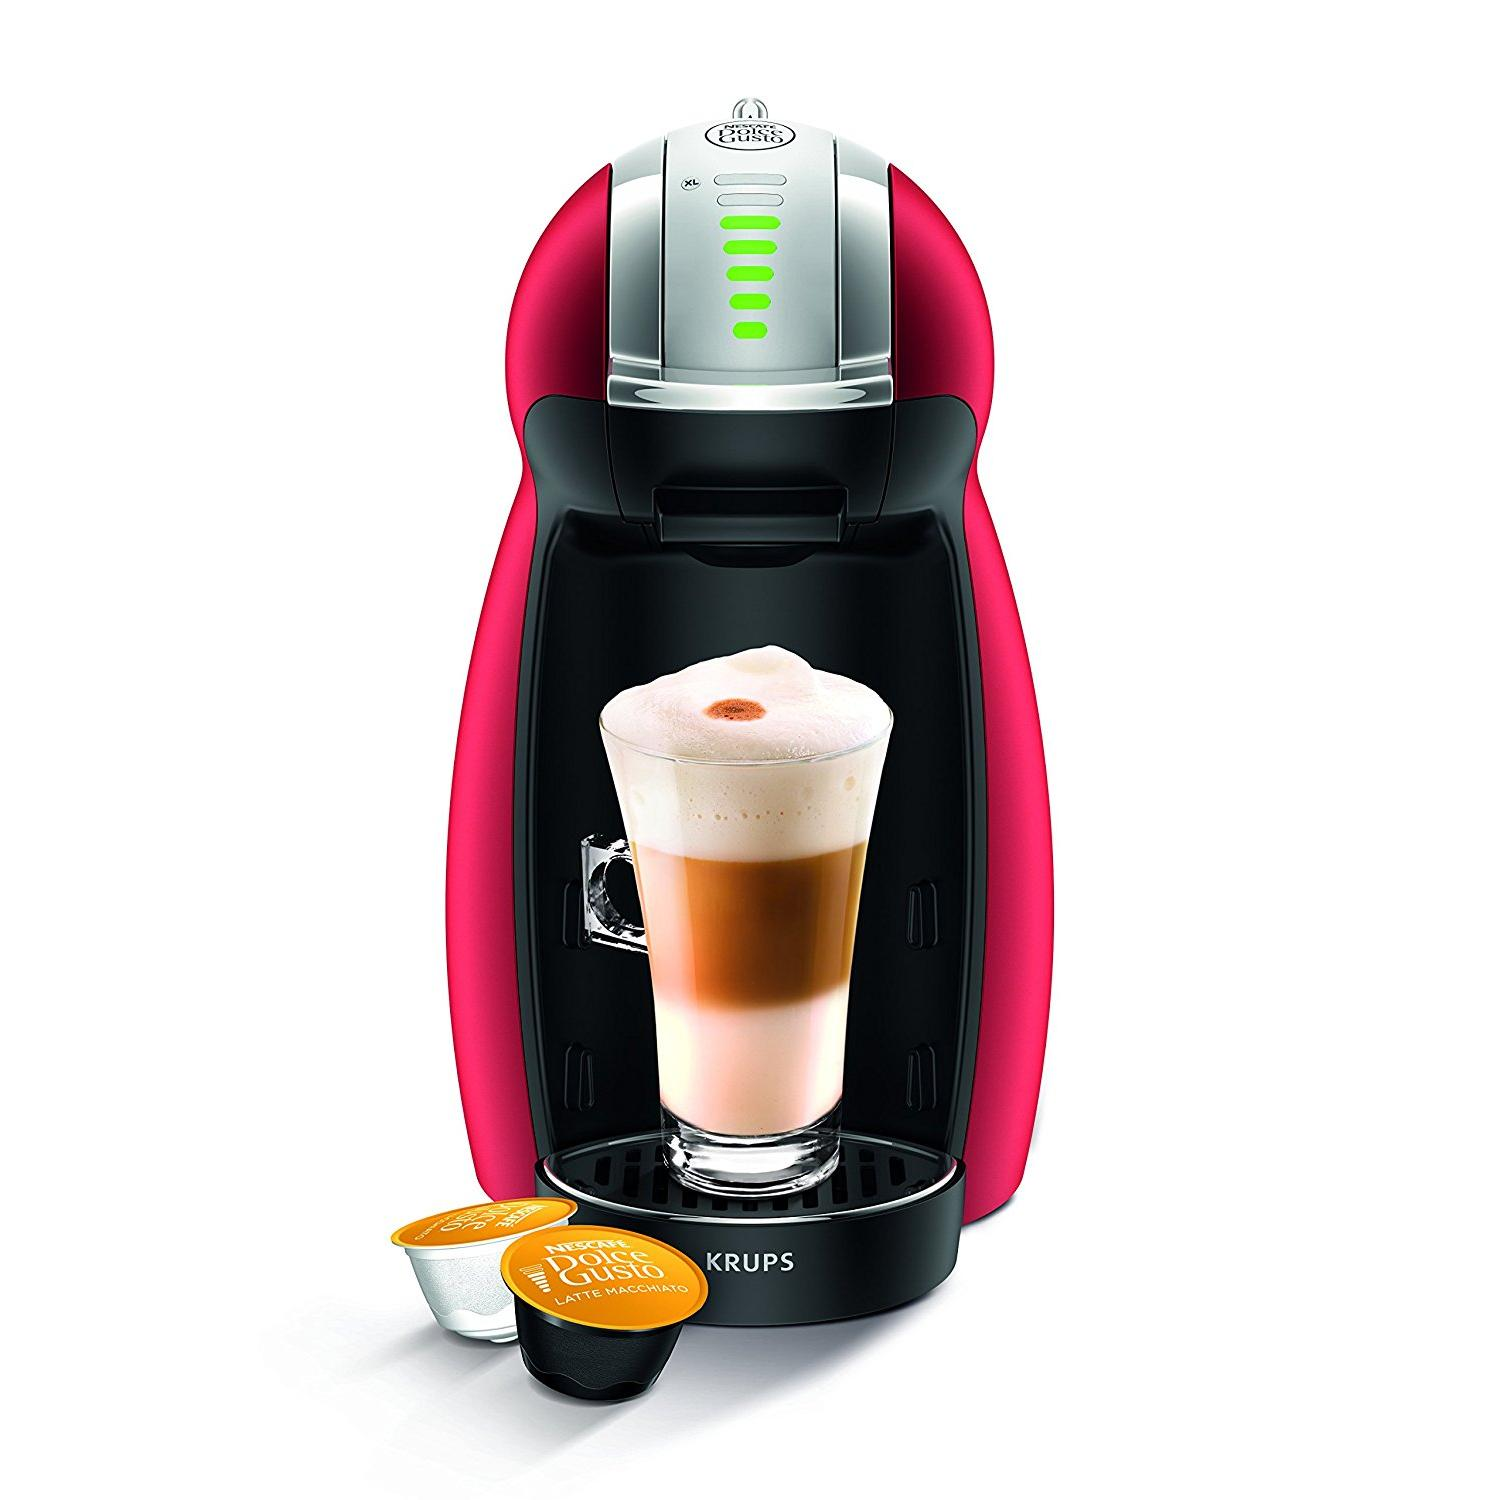 Expresso à capsule Dolce Gusto Krups KP1605